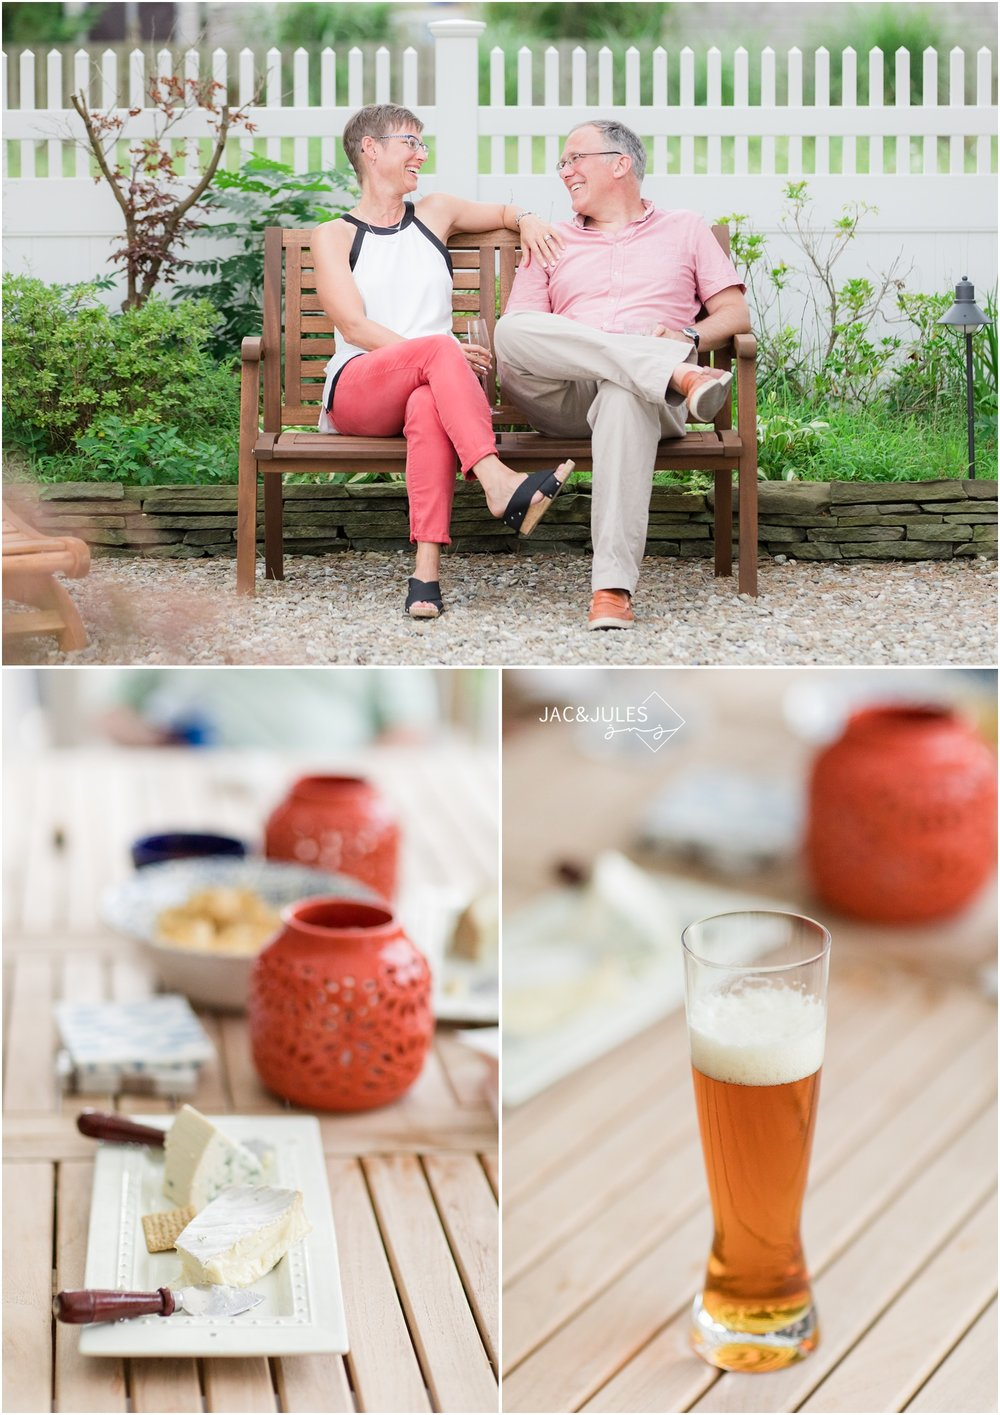 photos of couple relaxing on a bench at a family reunion at home in Mantoloking, NJ.